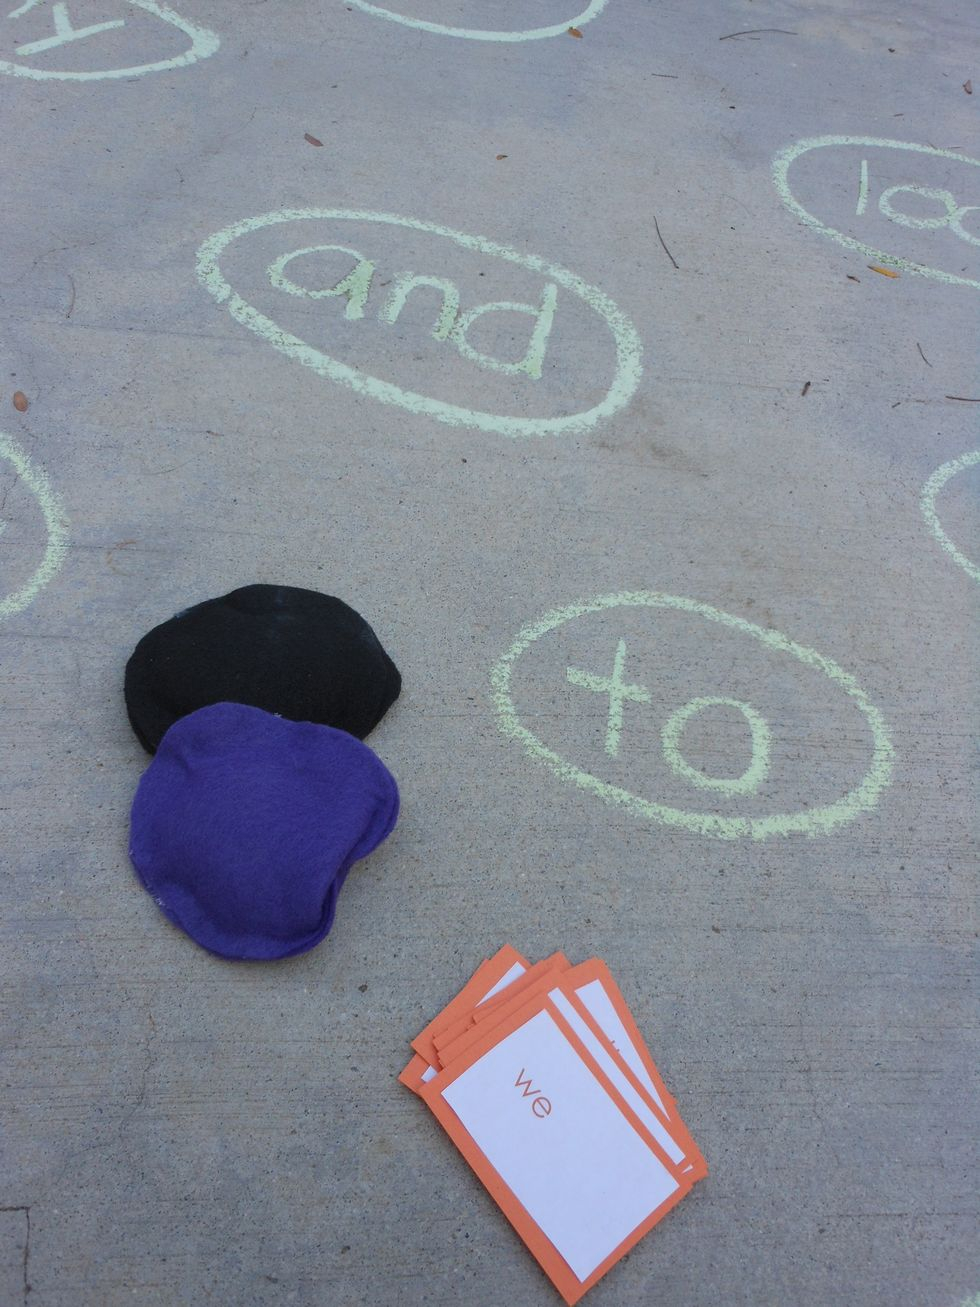 Word play DIY Chalk Art Ideas To Create The Coolest Sidewalk Where Every One Want